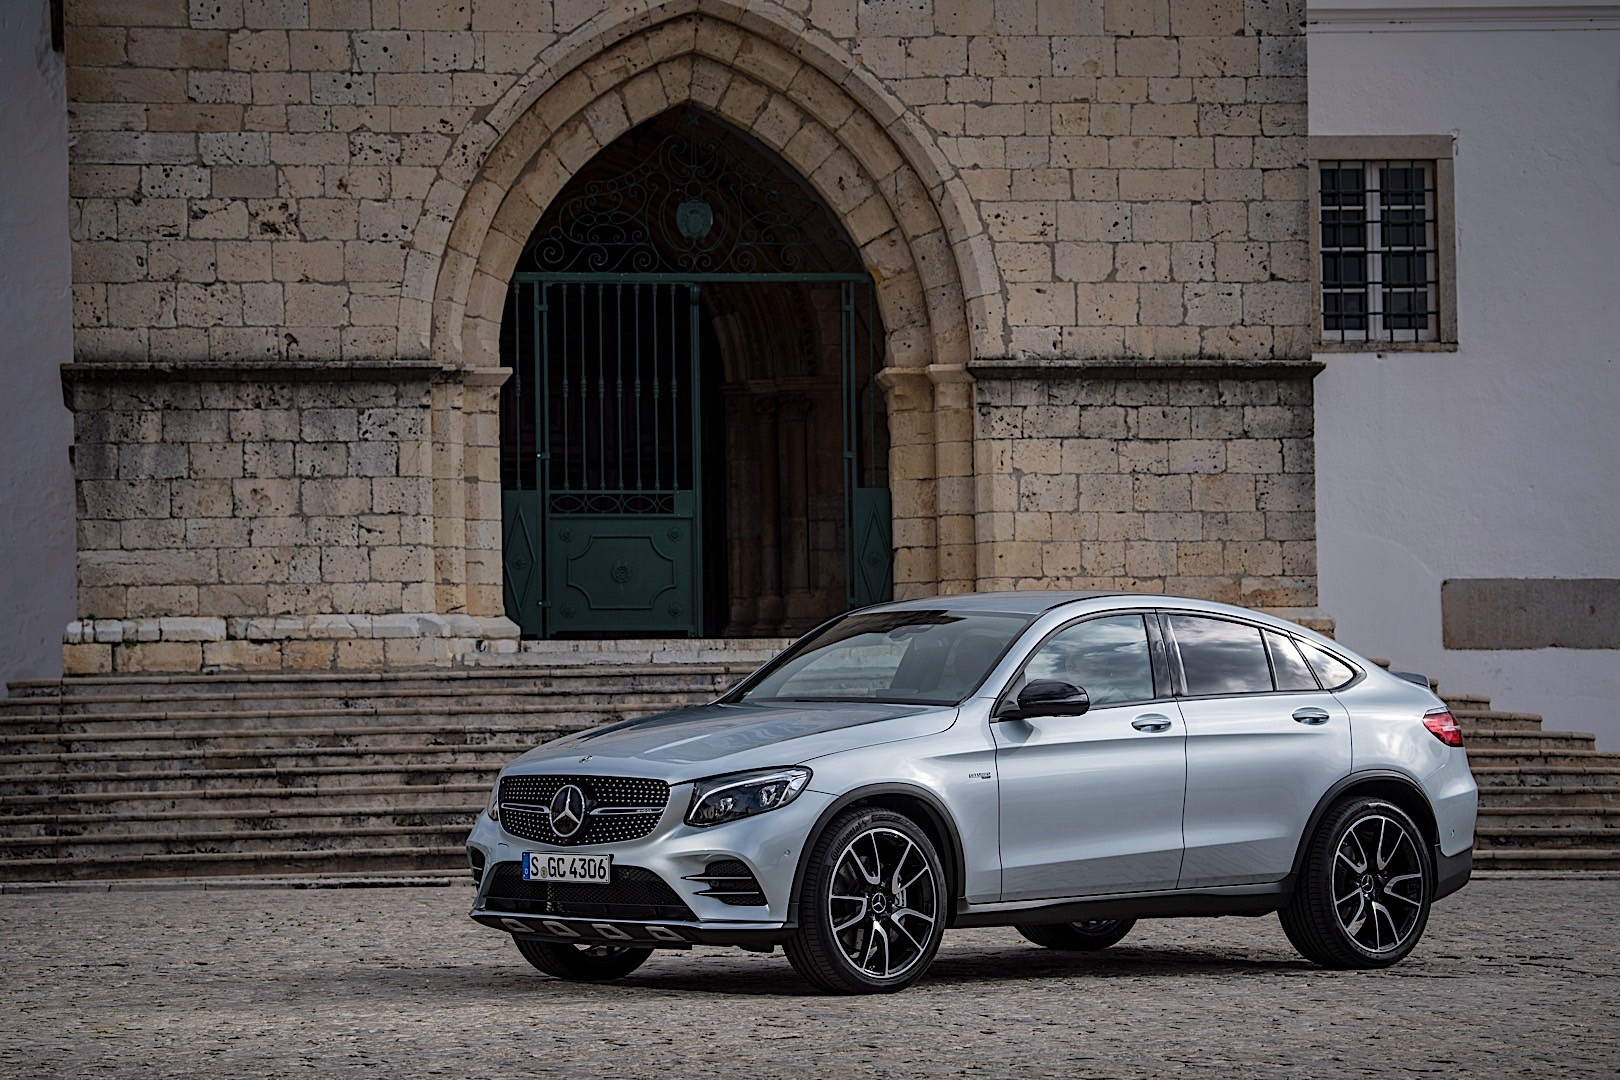 New Mercedes Suv >> Mercedes-AMG GLC 43 Coupe (C253) specs & photos - 2016, 2017, 2018, 2019 - autoevolution